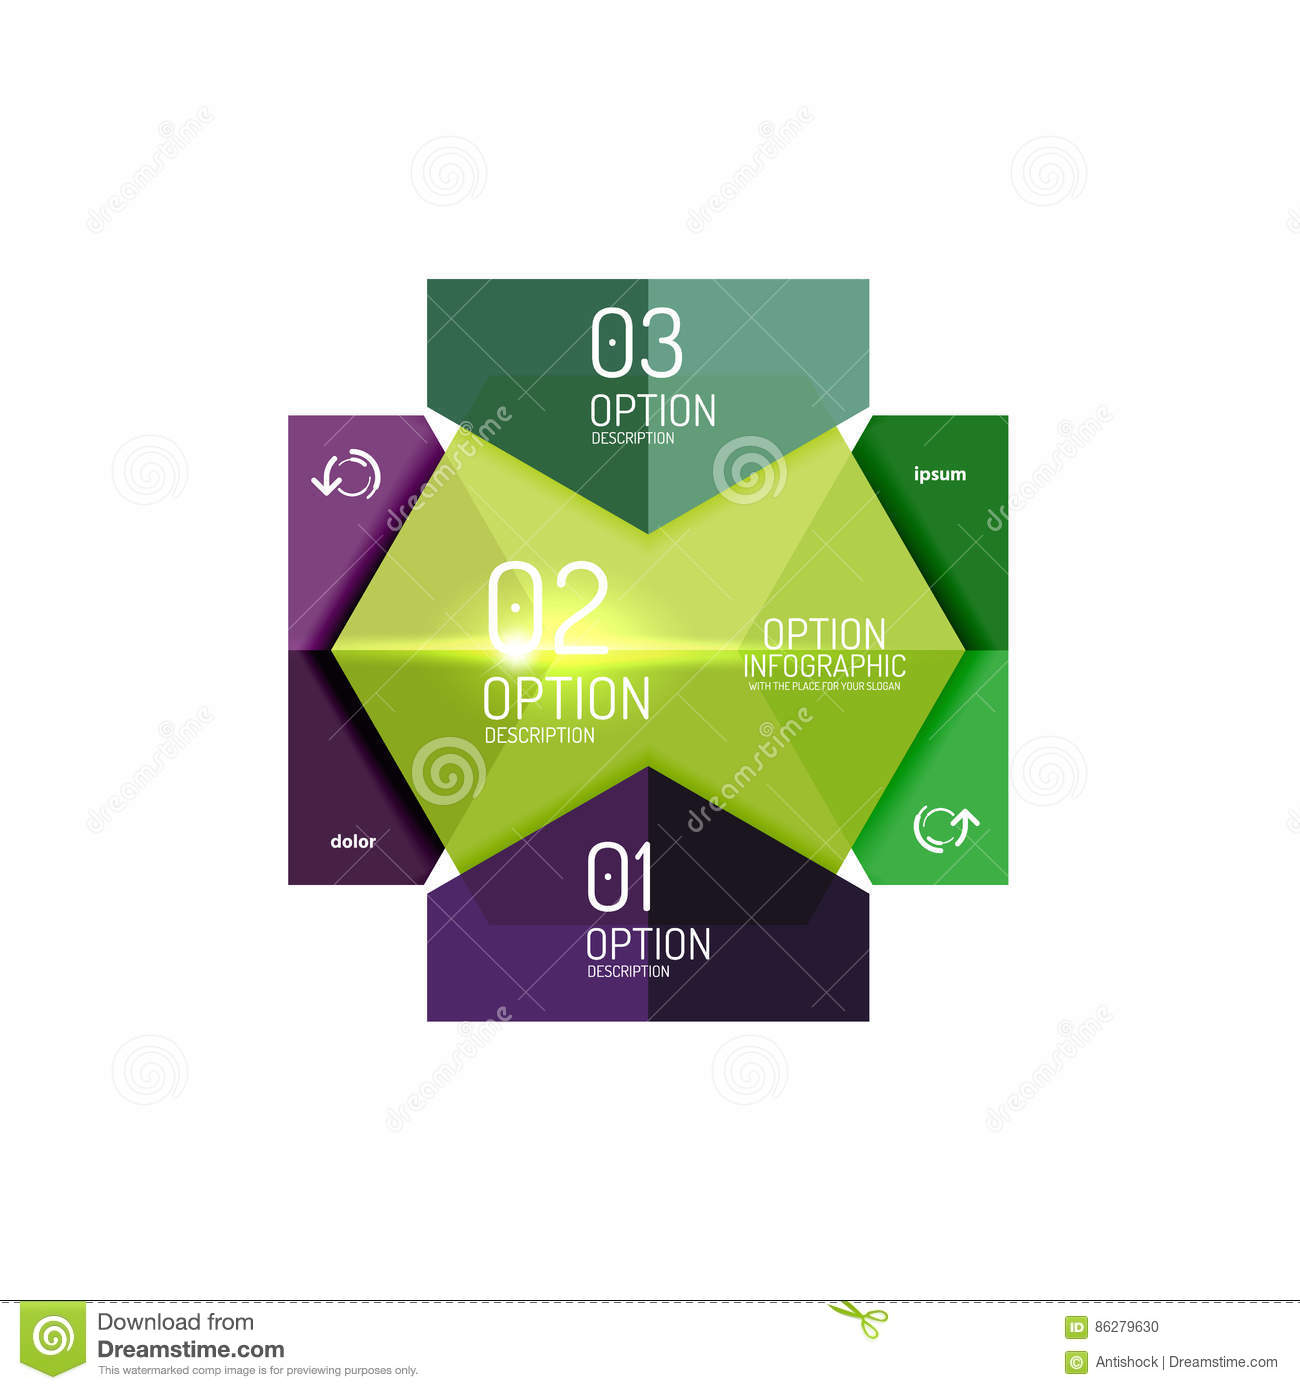 Business option diagram templates stock illustration illustration download business option diagram templates stock illustration illustration of design diagram 86279630 ccuart Images